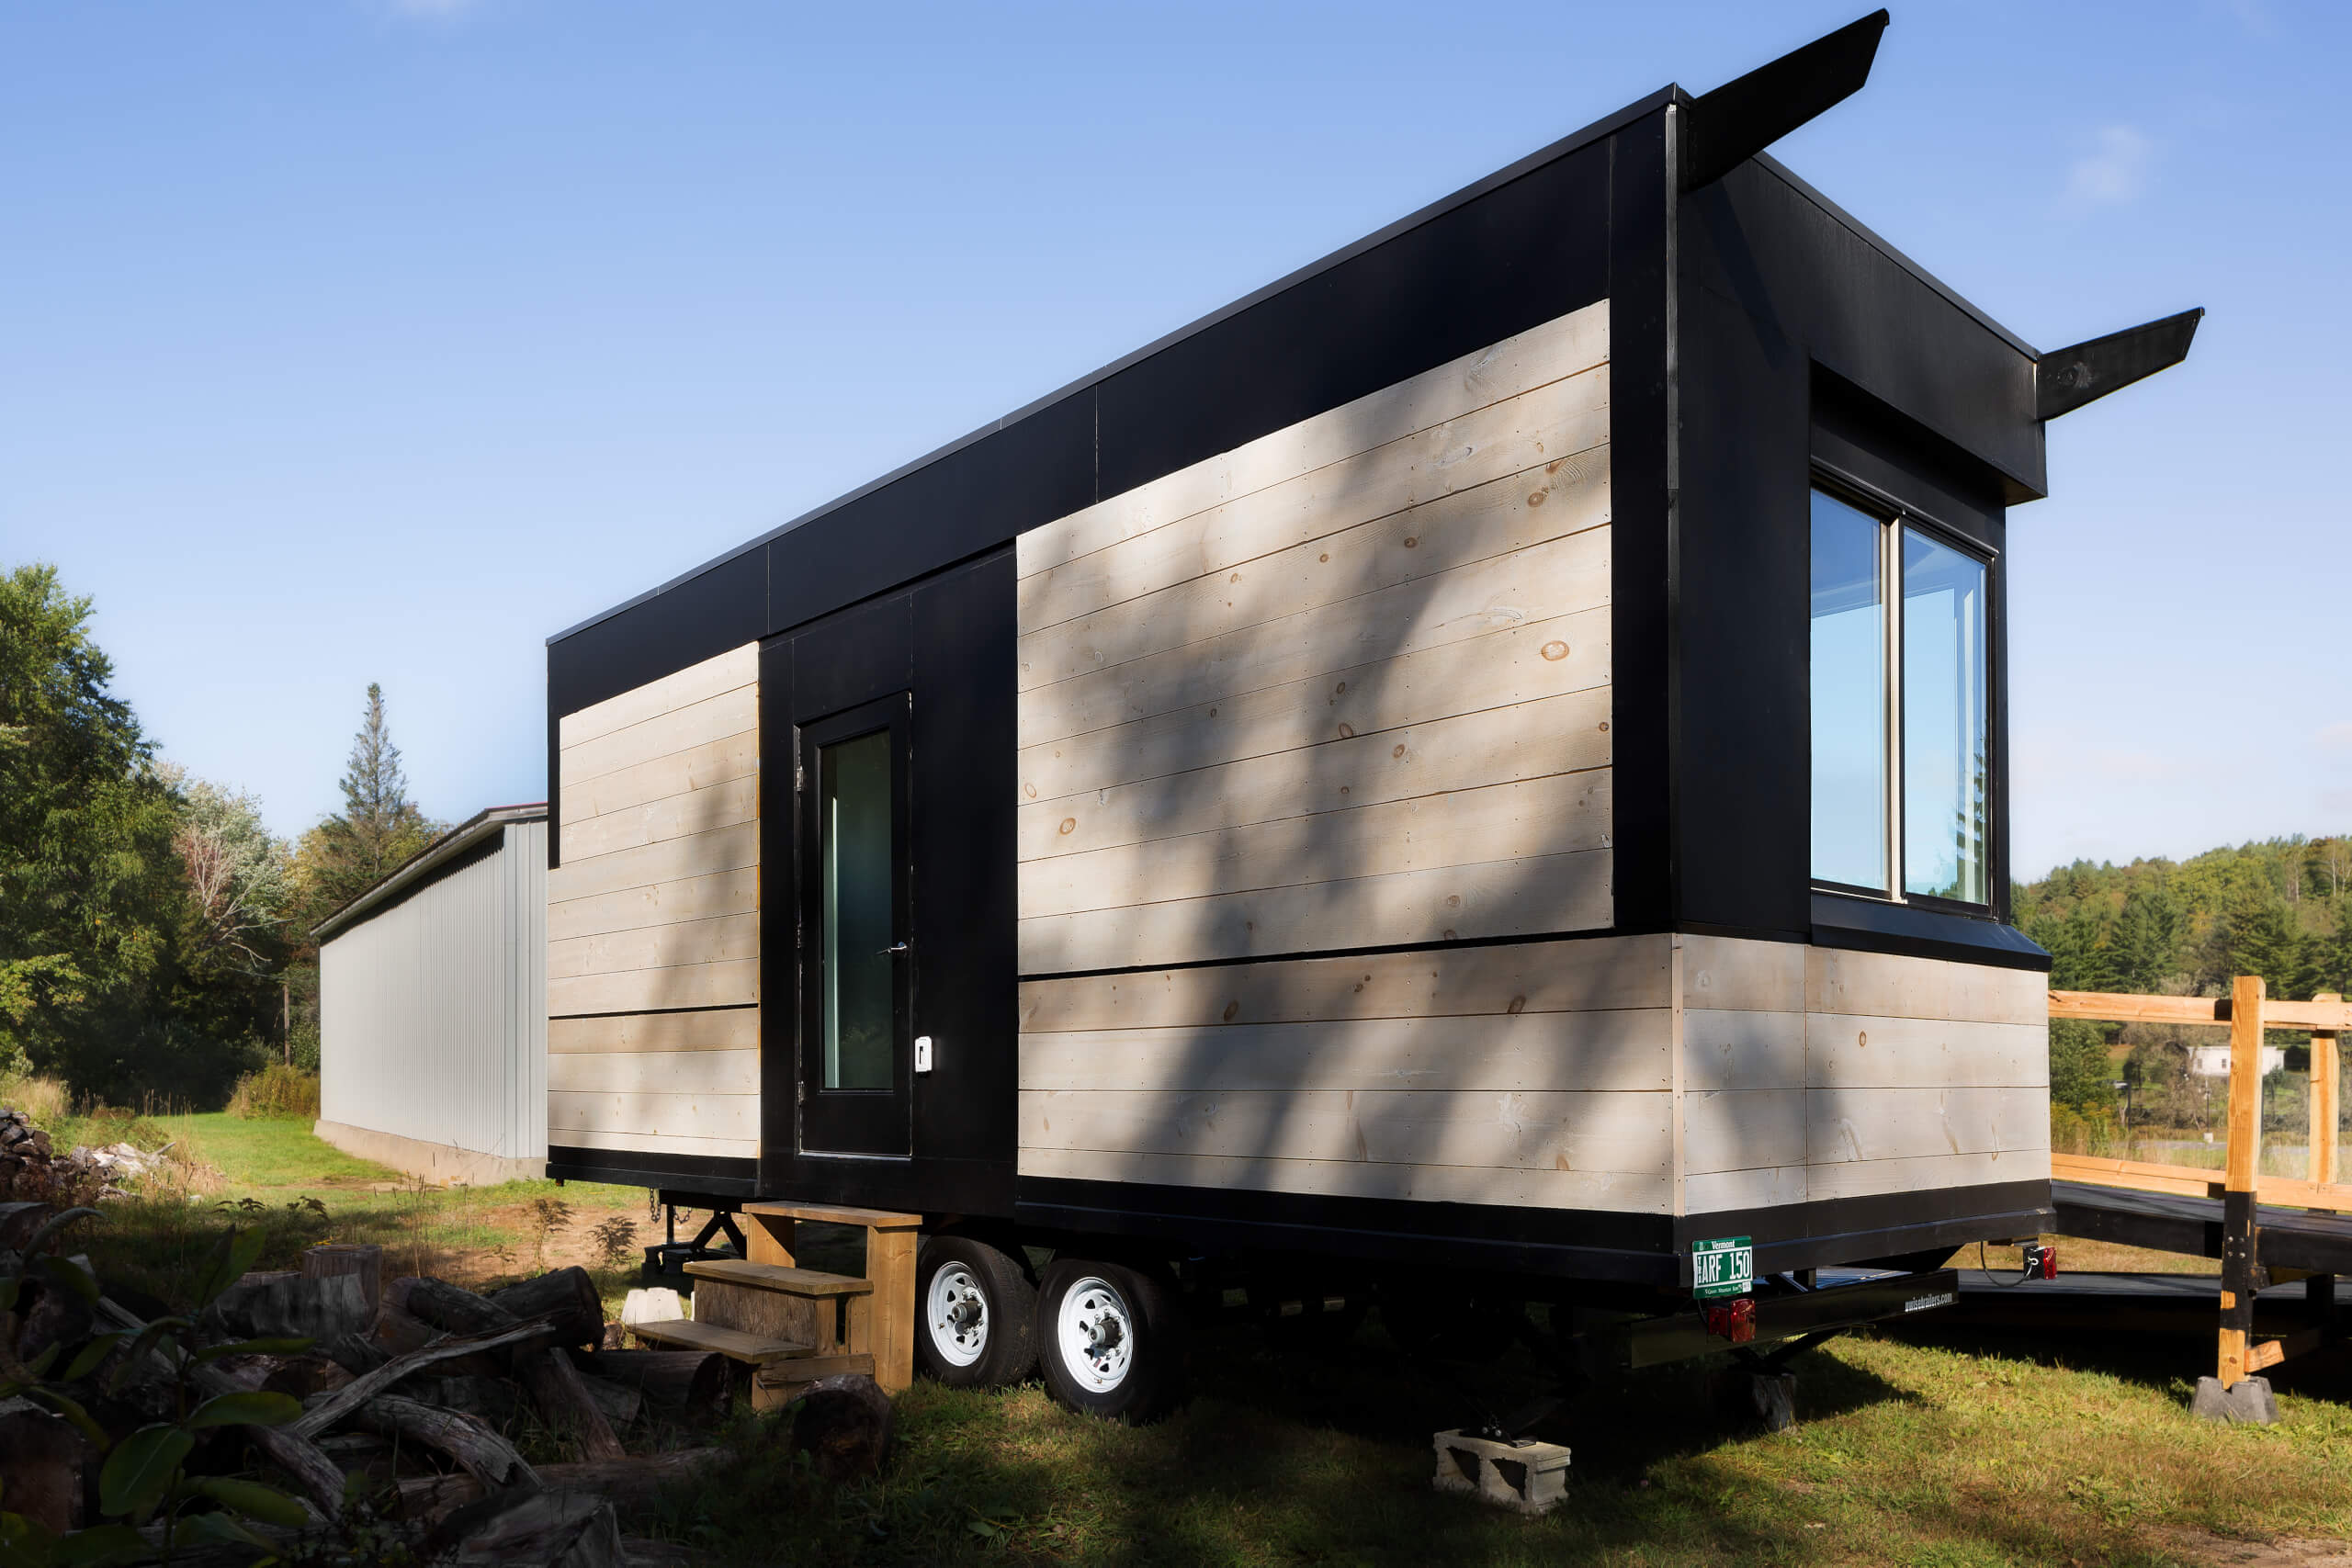 tetraplegique-invente-tiny-house-handicapes-wheel-pad-fauteuil-roulant-linesync-tiny-home-wheelchair-friendly-exterior-facade-outside-black-white-wood-window-sustainable-eco-friendly